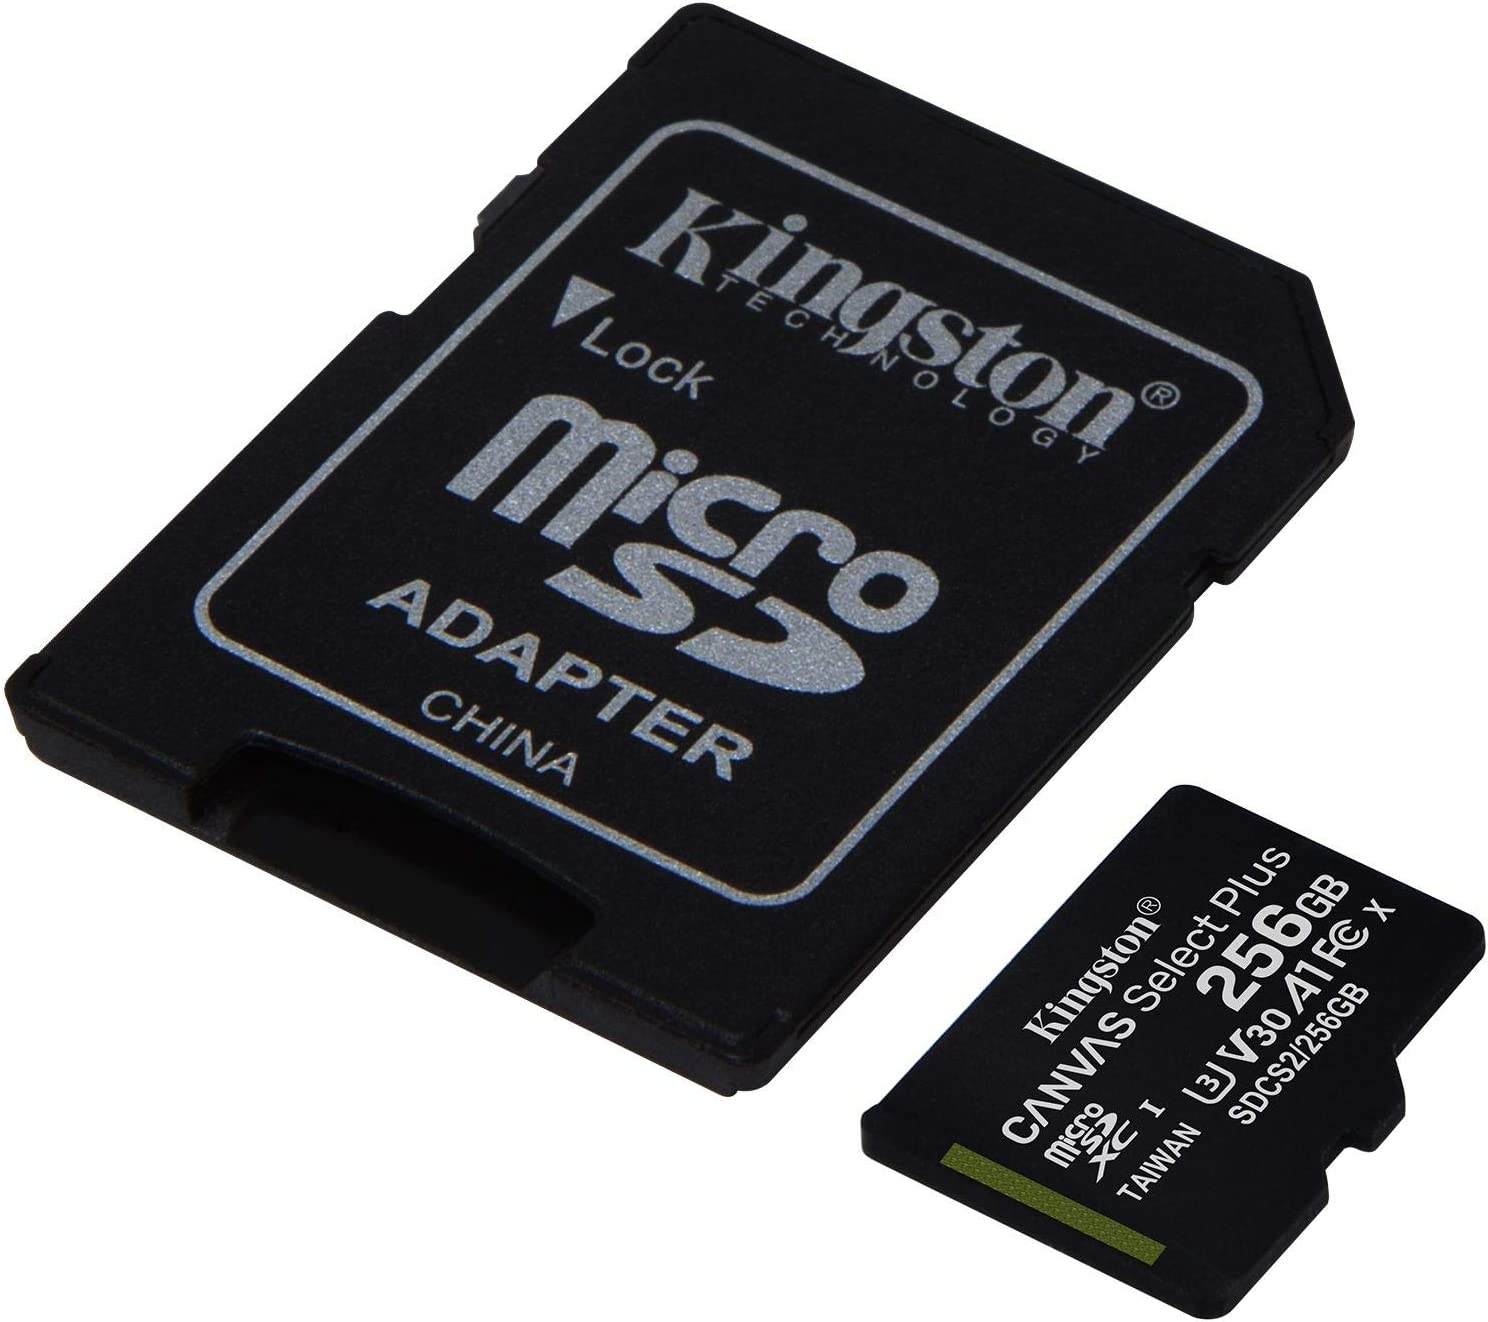 Kingston 256GB Lenovo A7000 MicroSDXC Canvas Select Plus Card Verified by SanFlash. (100MBs Works with Kingston)